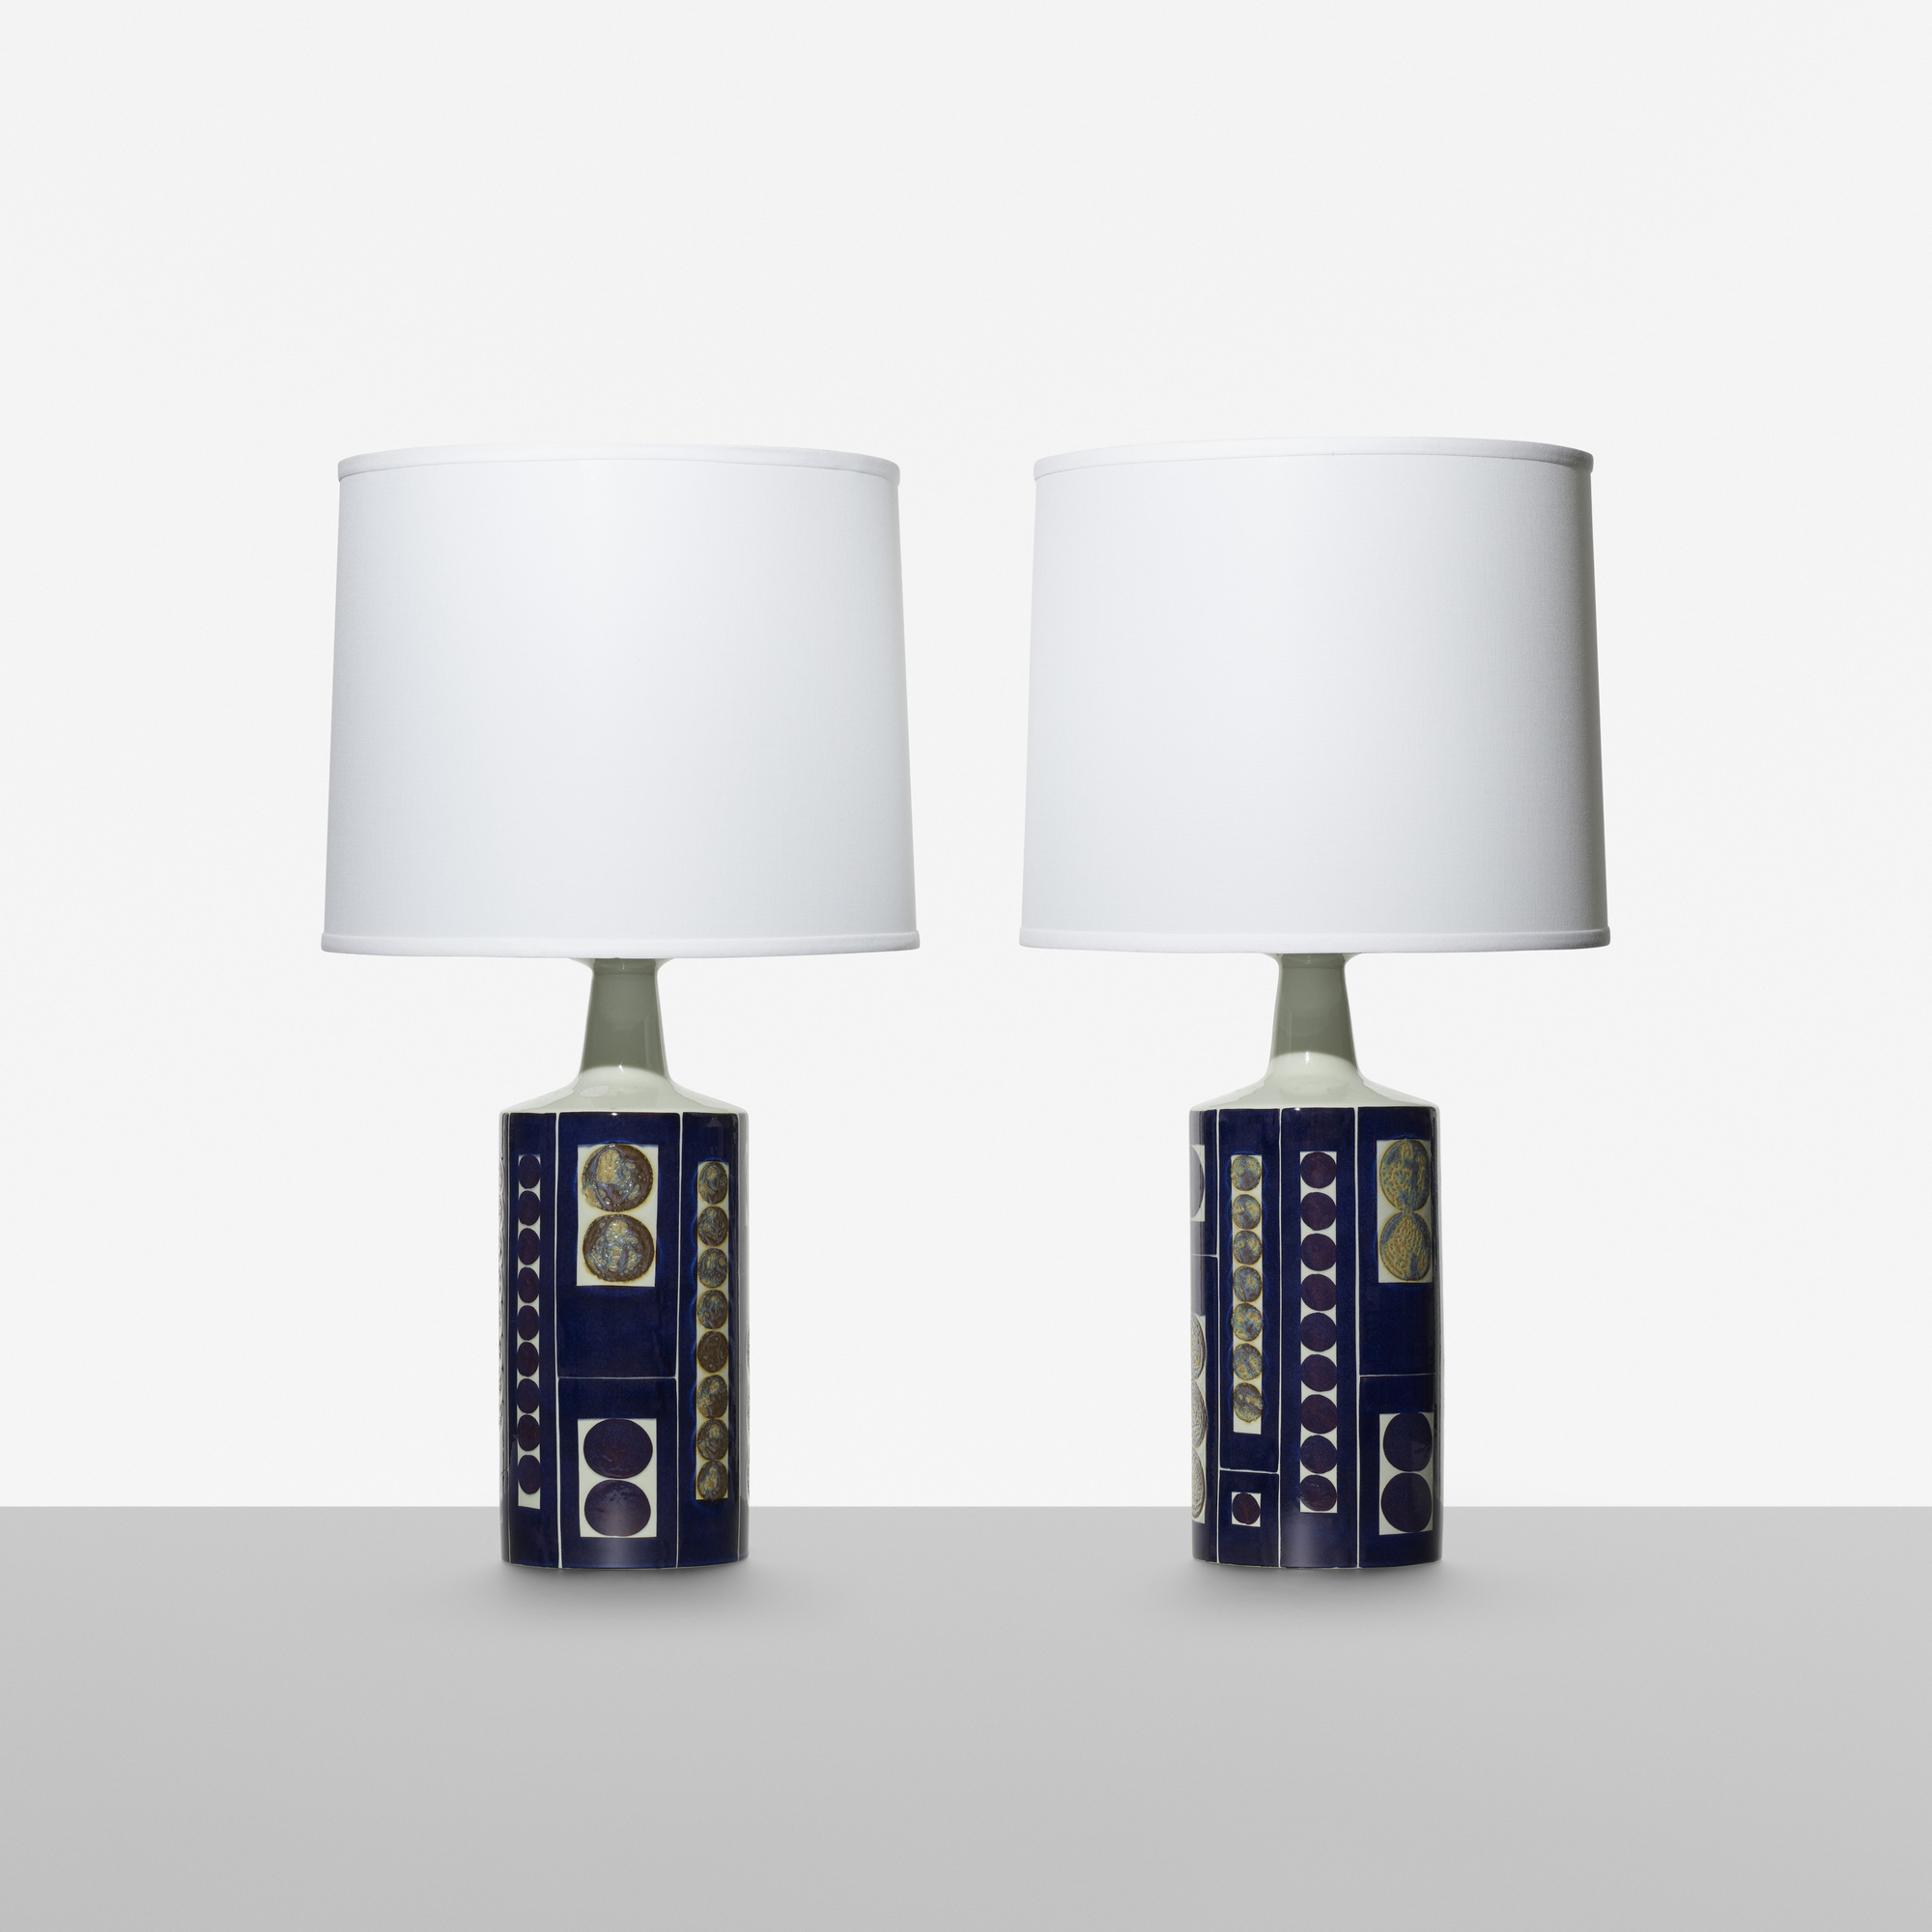 328: Fog & Mørup / table lamps, pair (1 of 2)